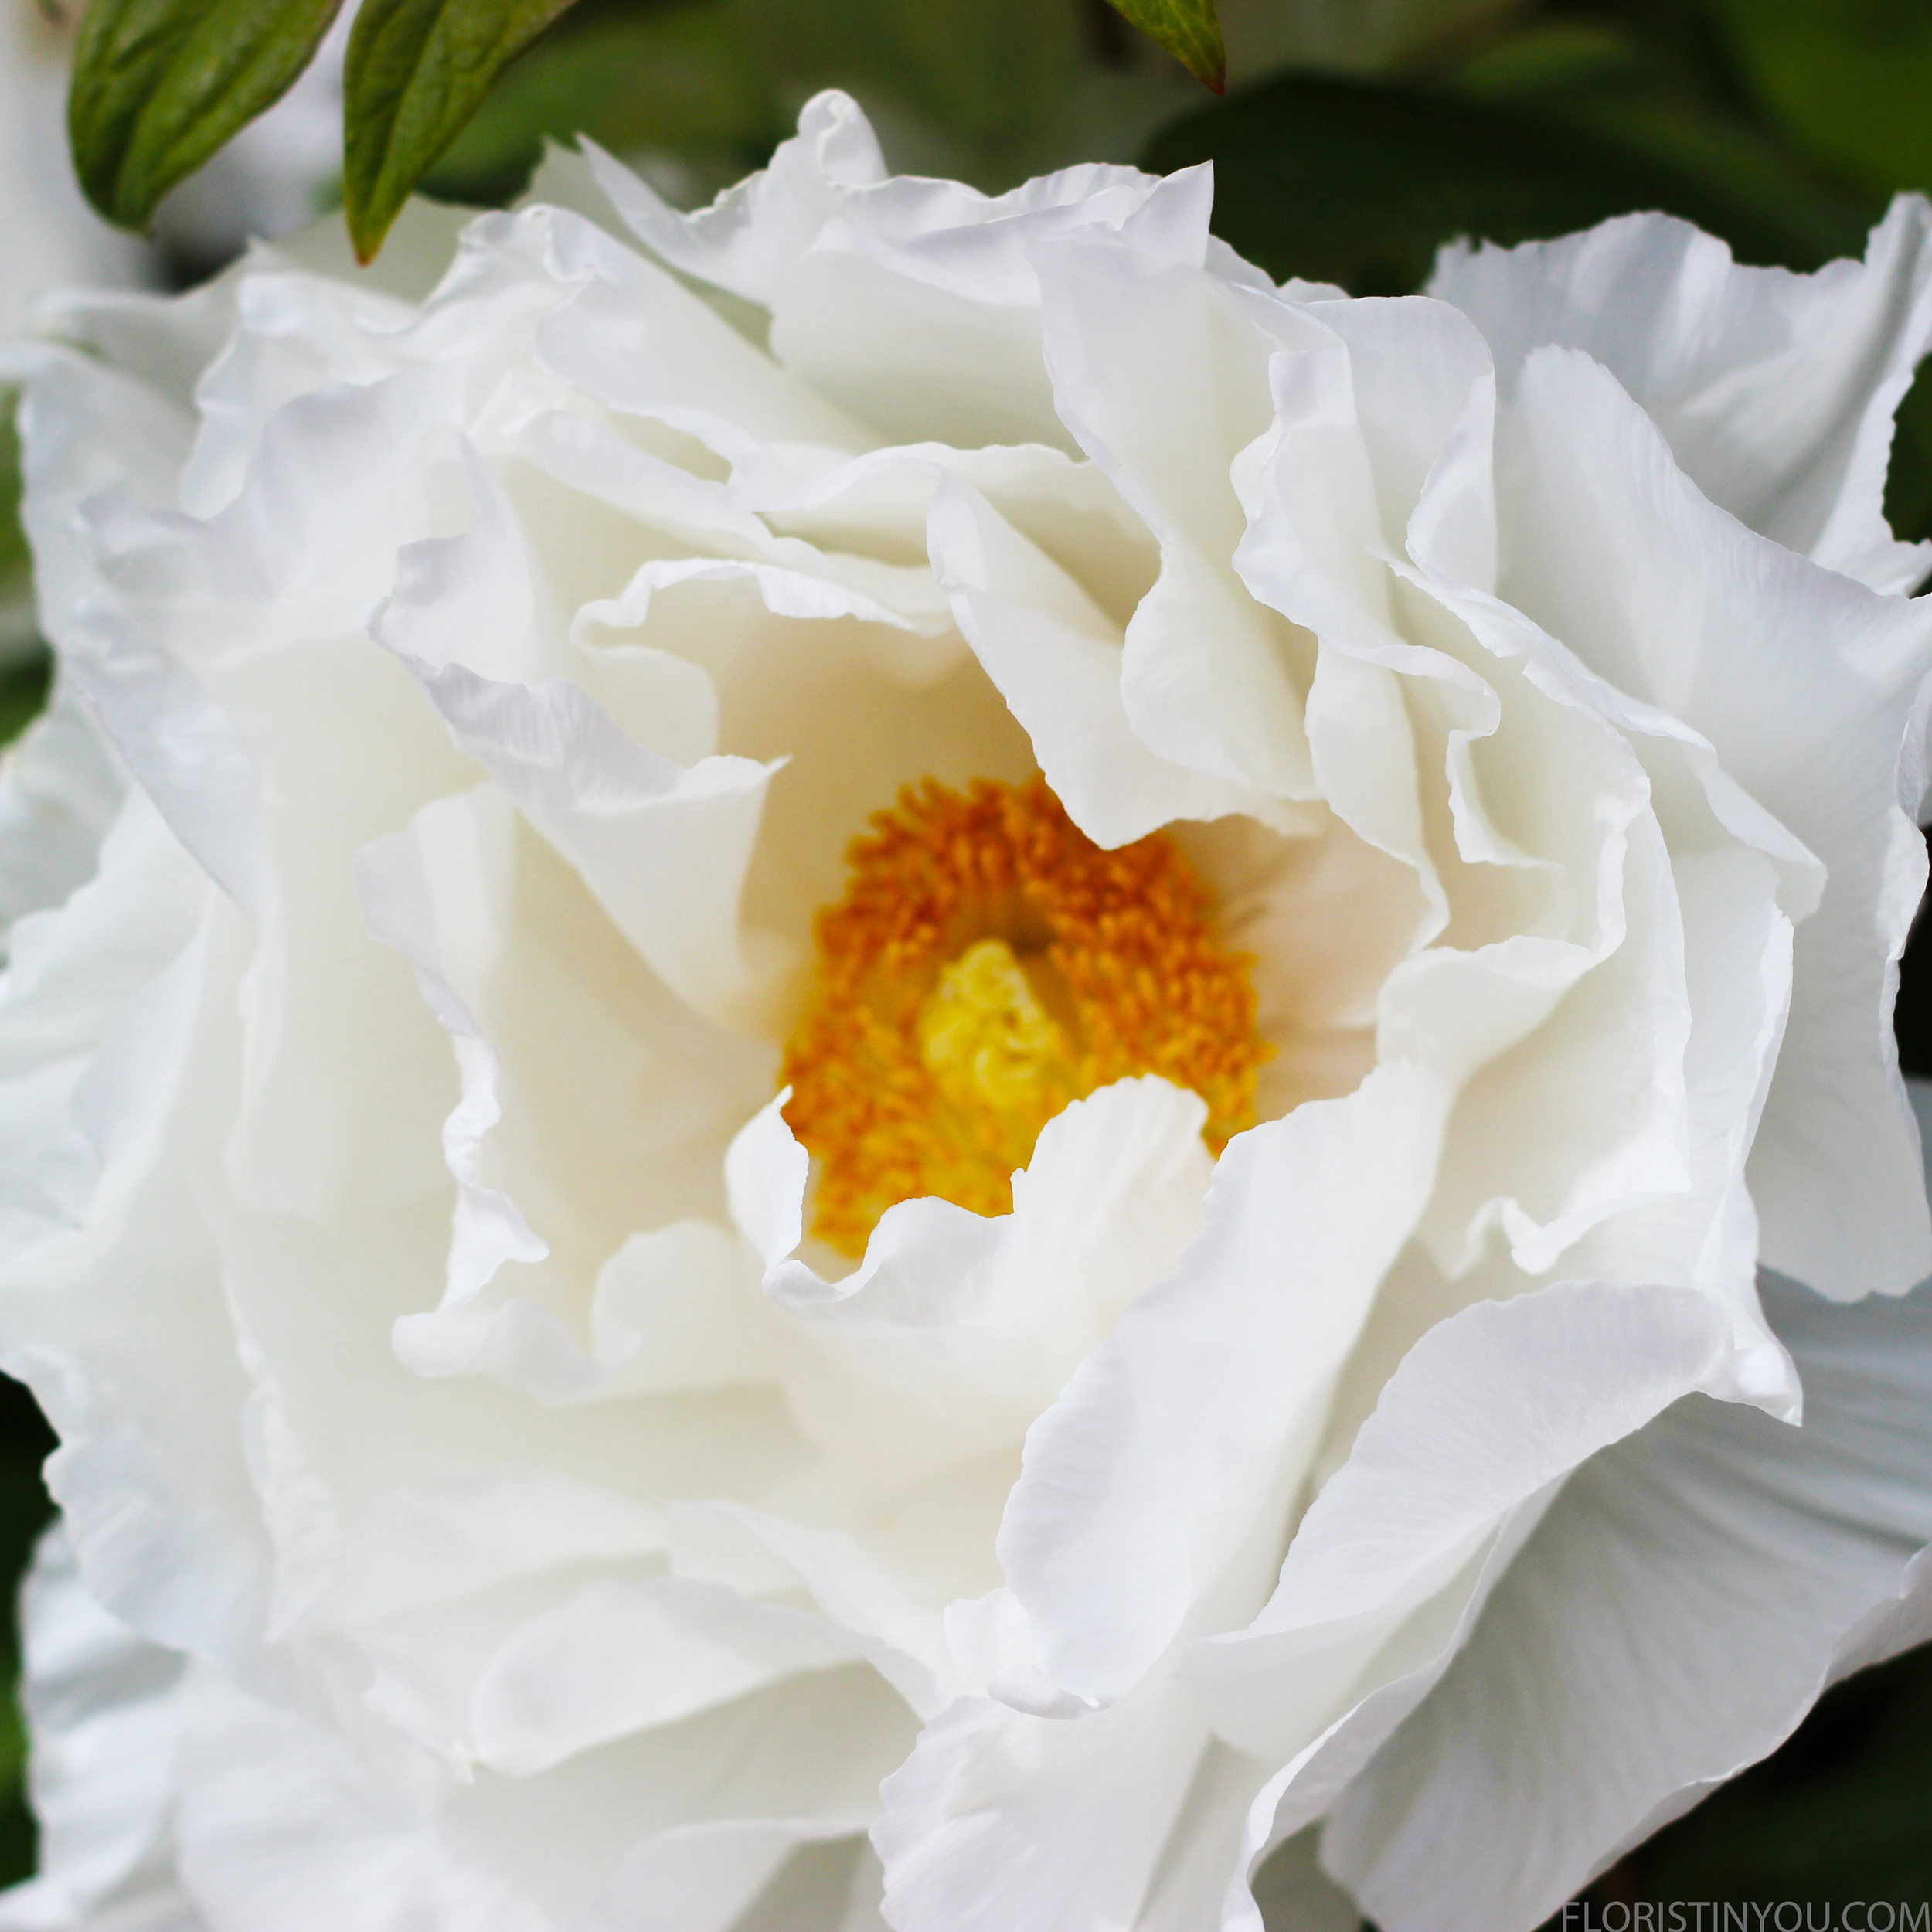 We inquired within. We were told they are called tree peonies.